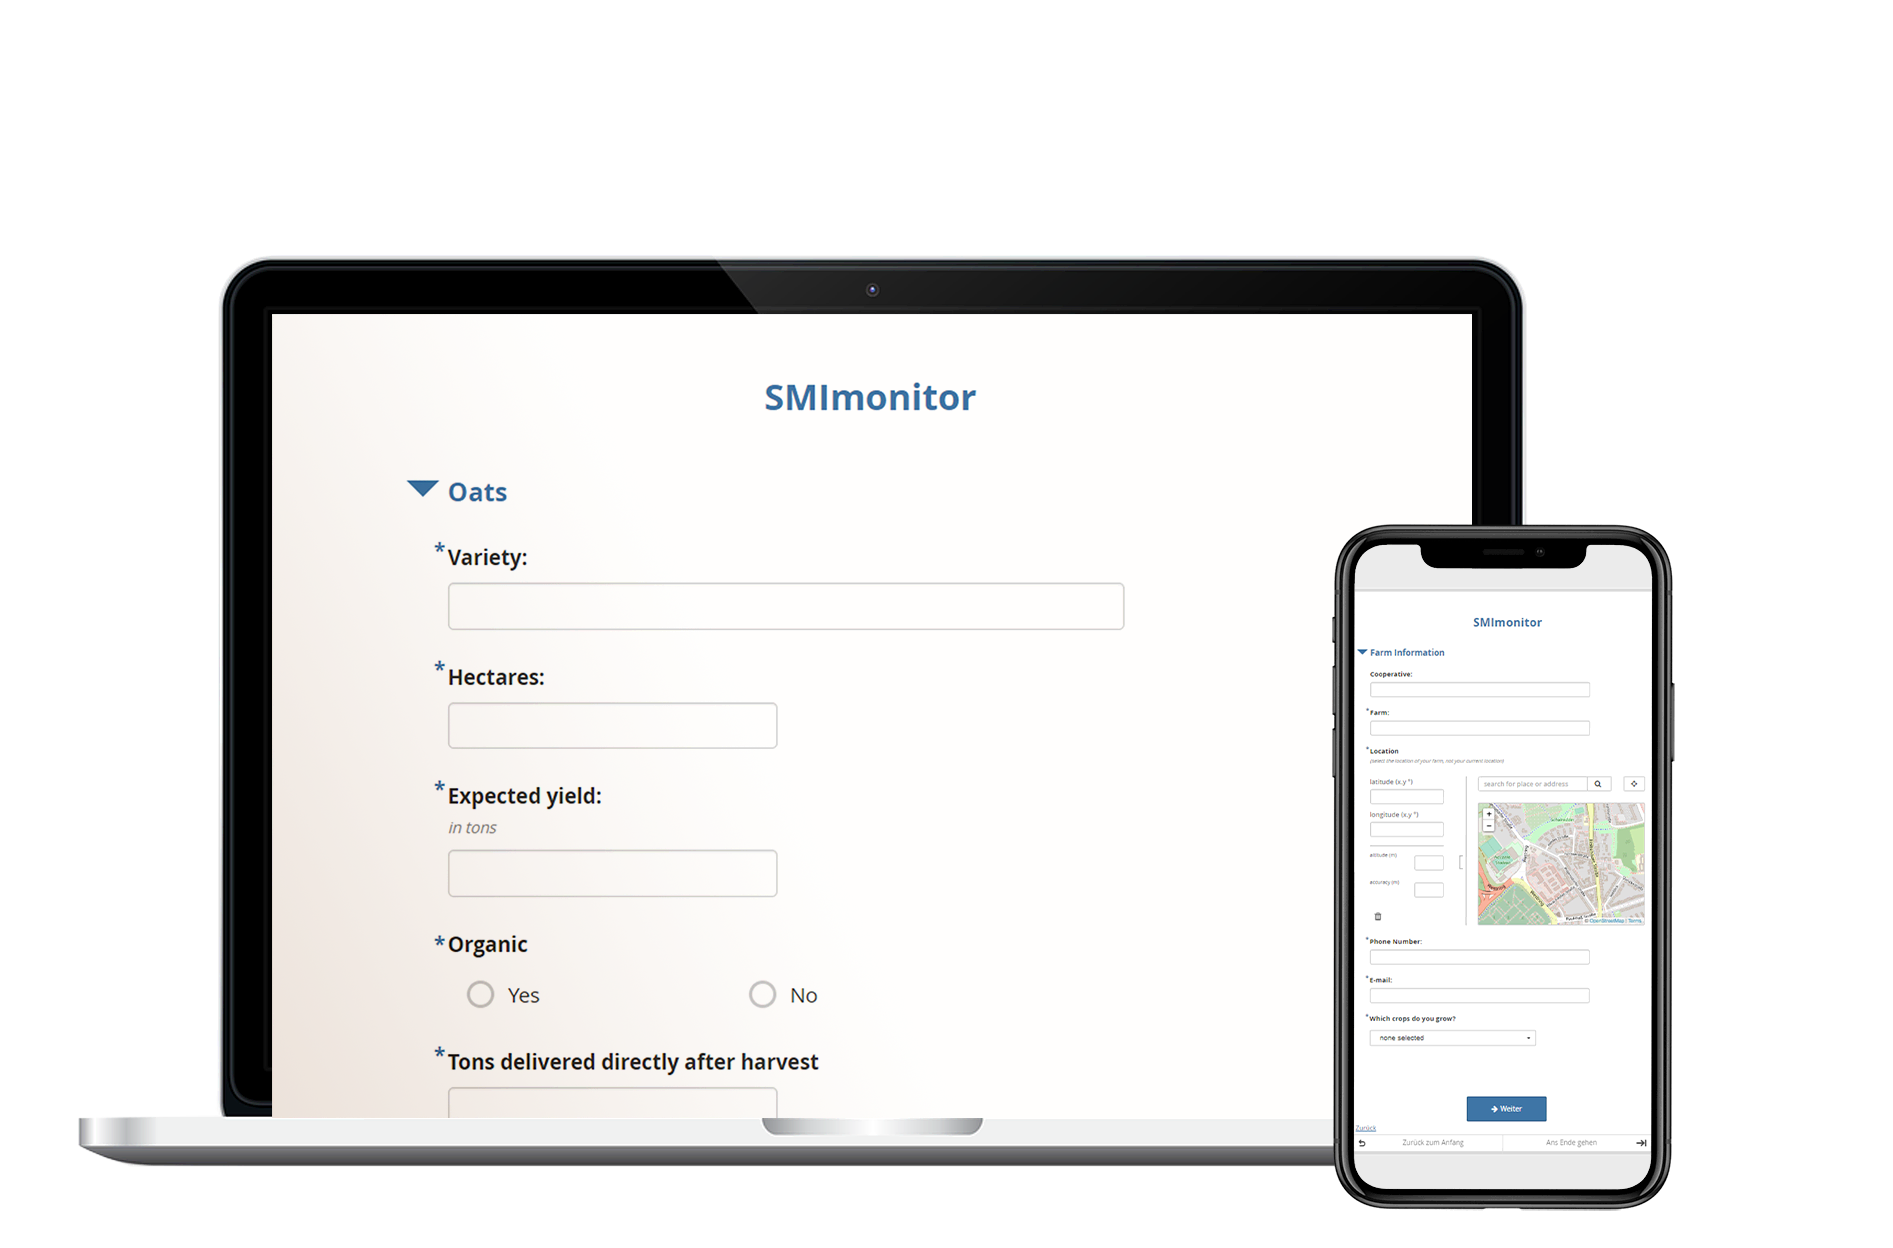 SMImonitor questionnaire tool for all devices